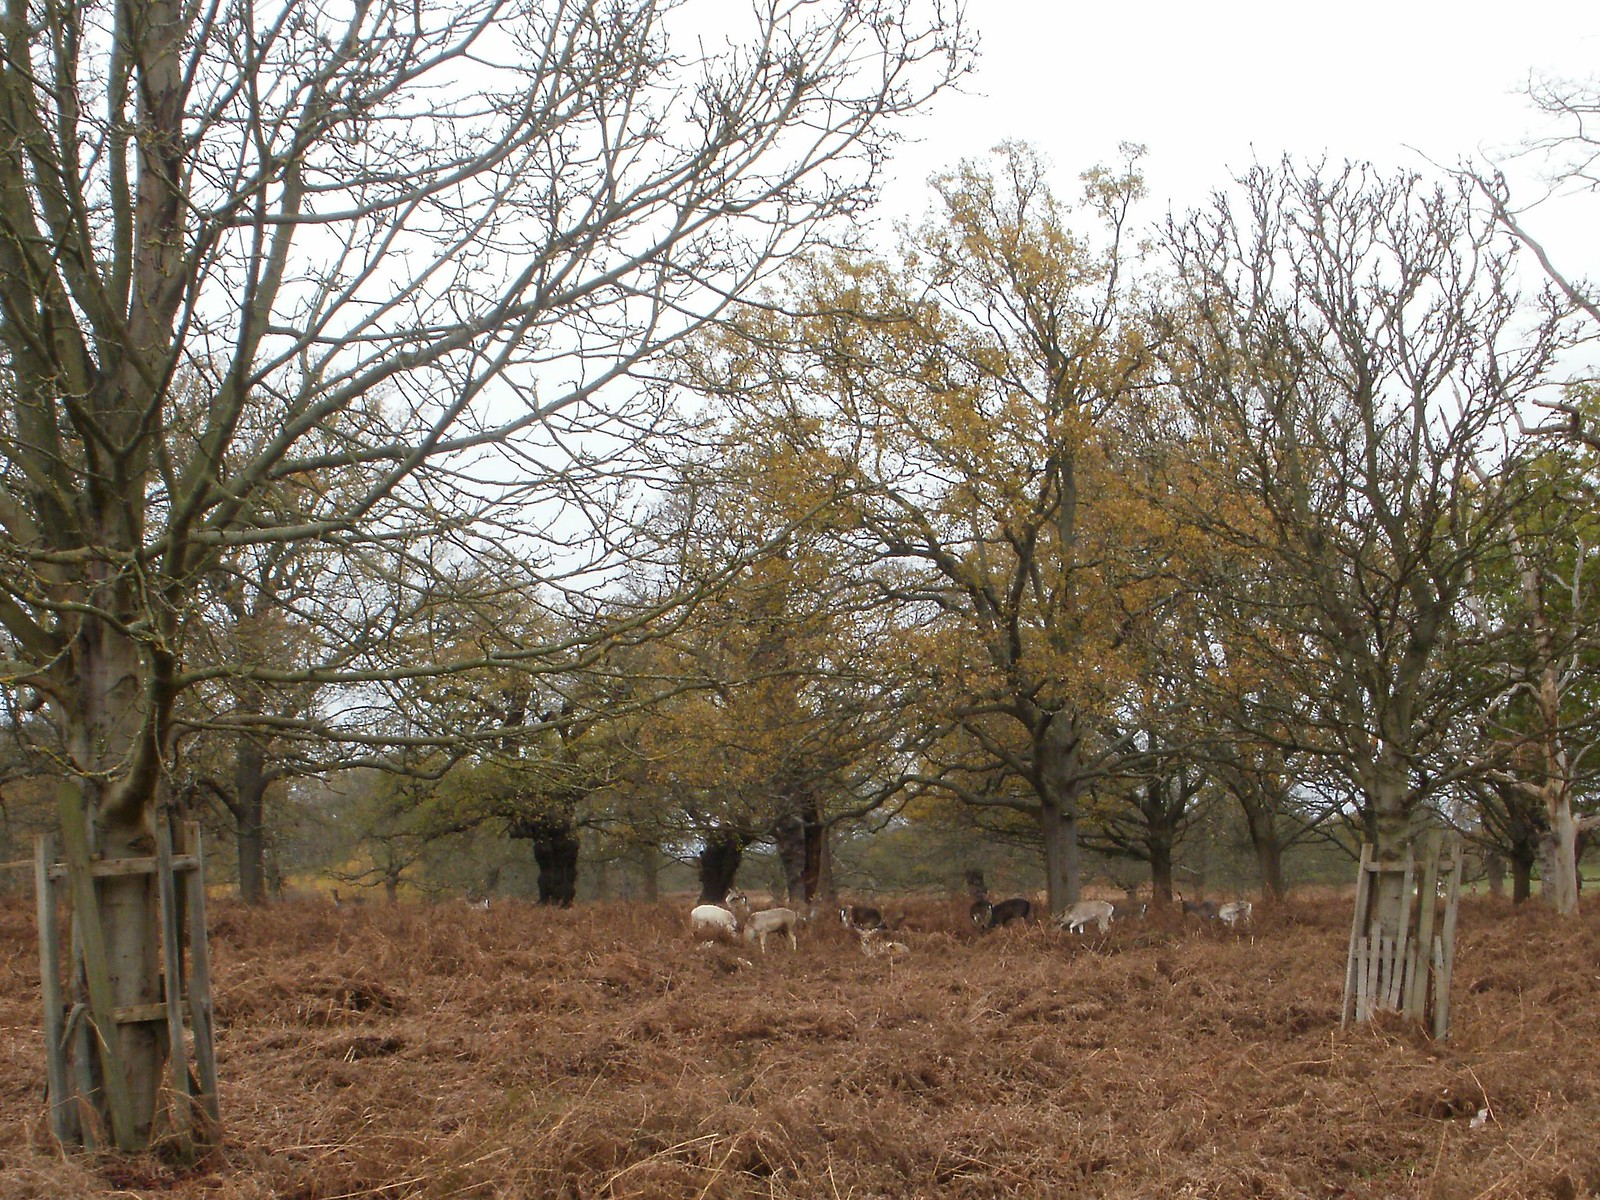 Deer in Richmond Park 1 OLYMPUS DIGITAL CAMERA